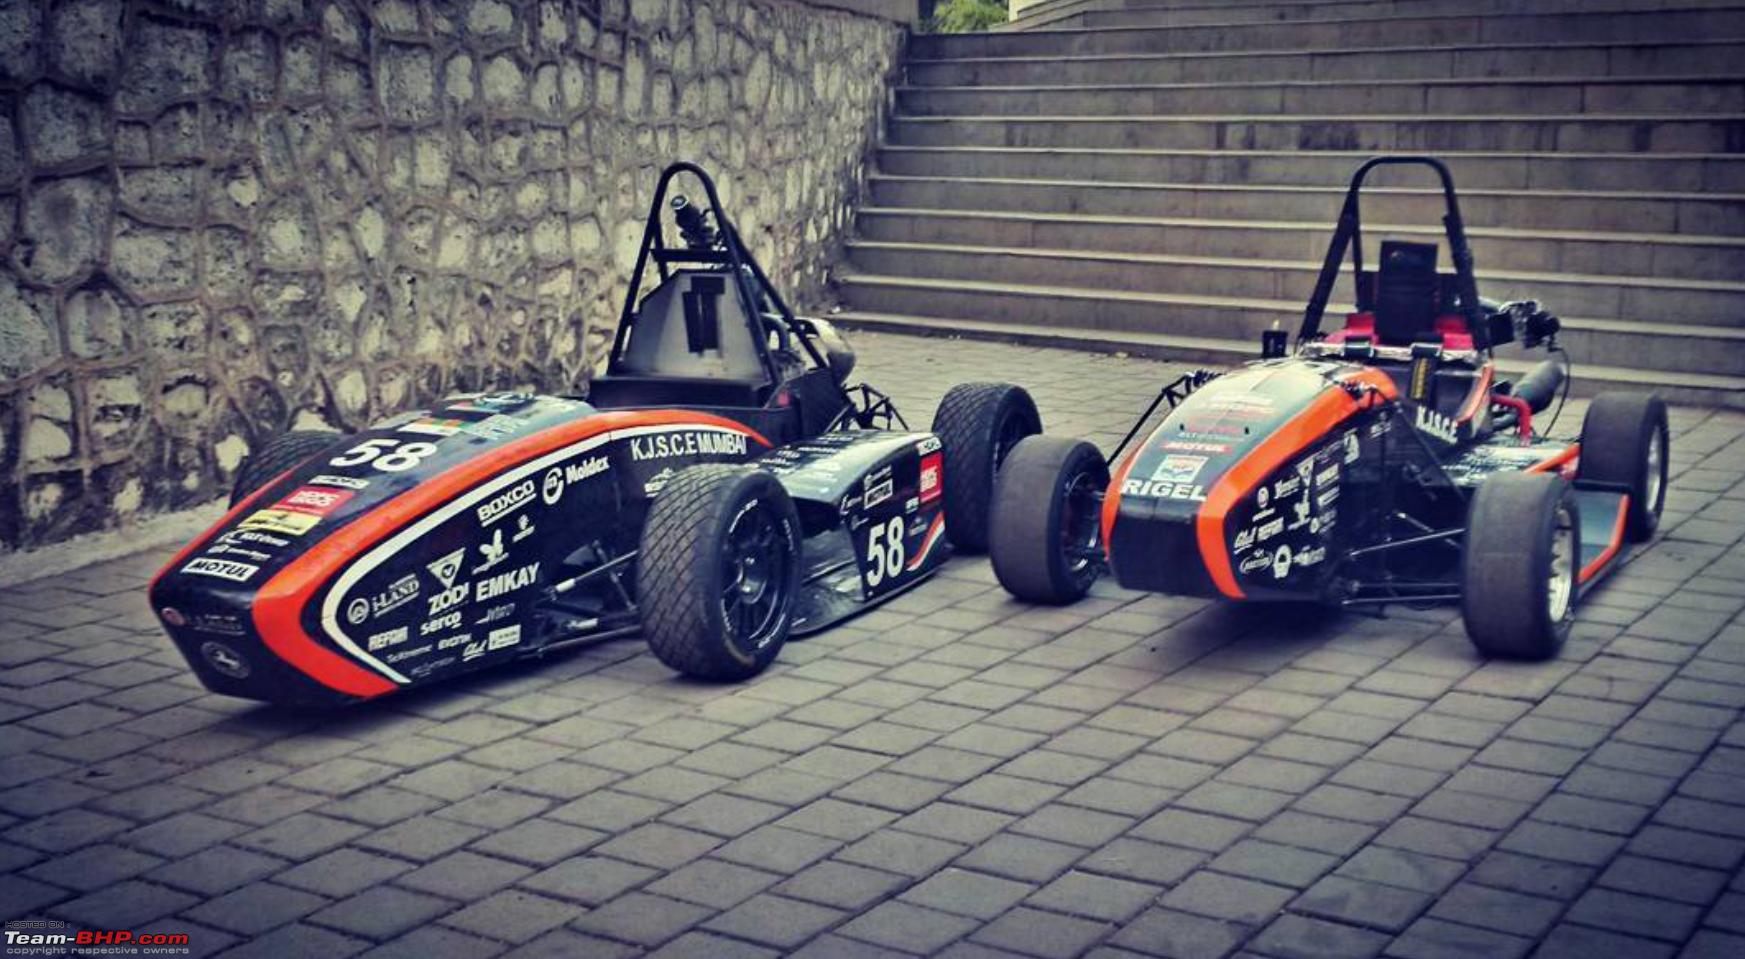 Grimsel Electric Car Sets A World Record 0 To 100 Km H In 1 513